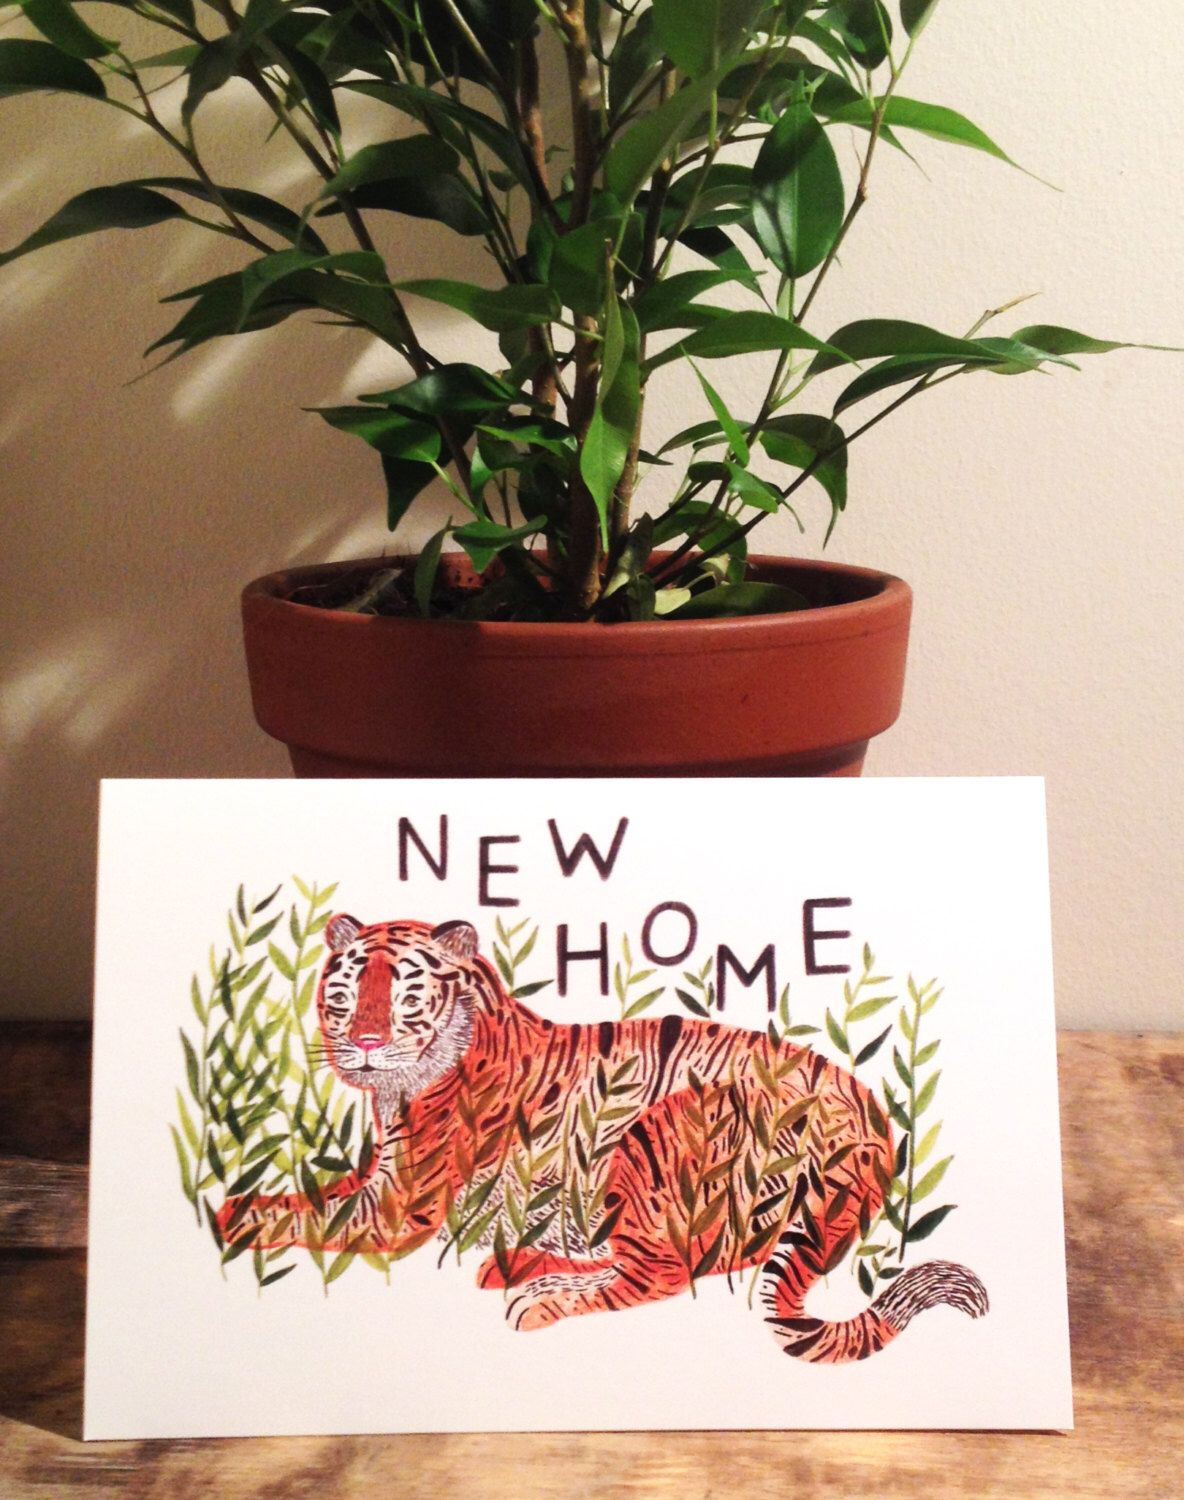 New home tiger card by CarolineDowsett on Etsy https://www.etsy.com/listing/209152970/new-home-tiger-card